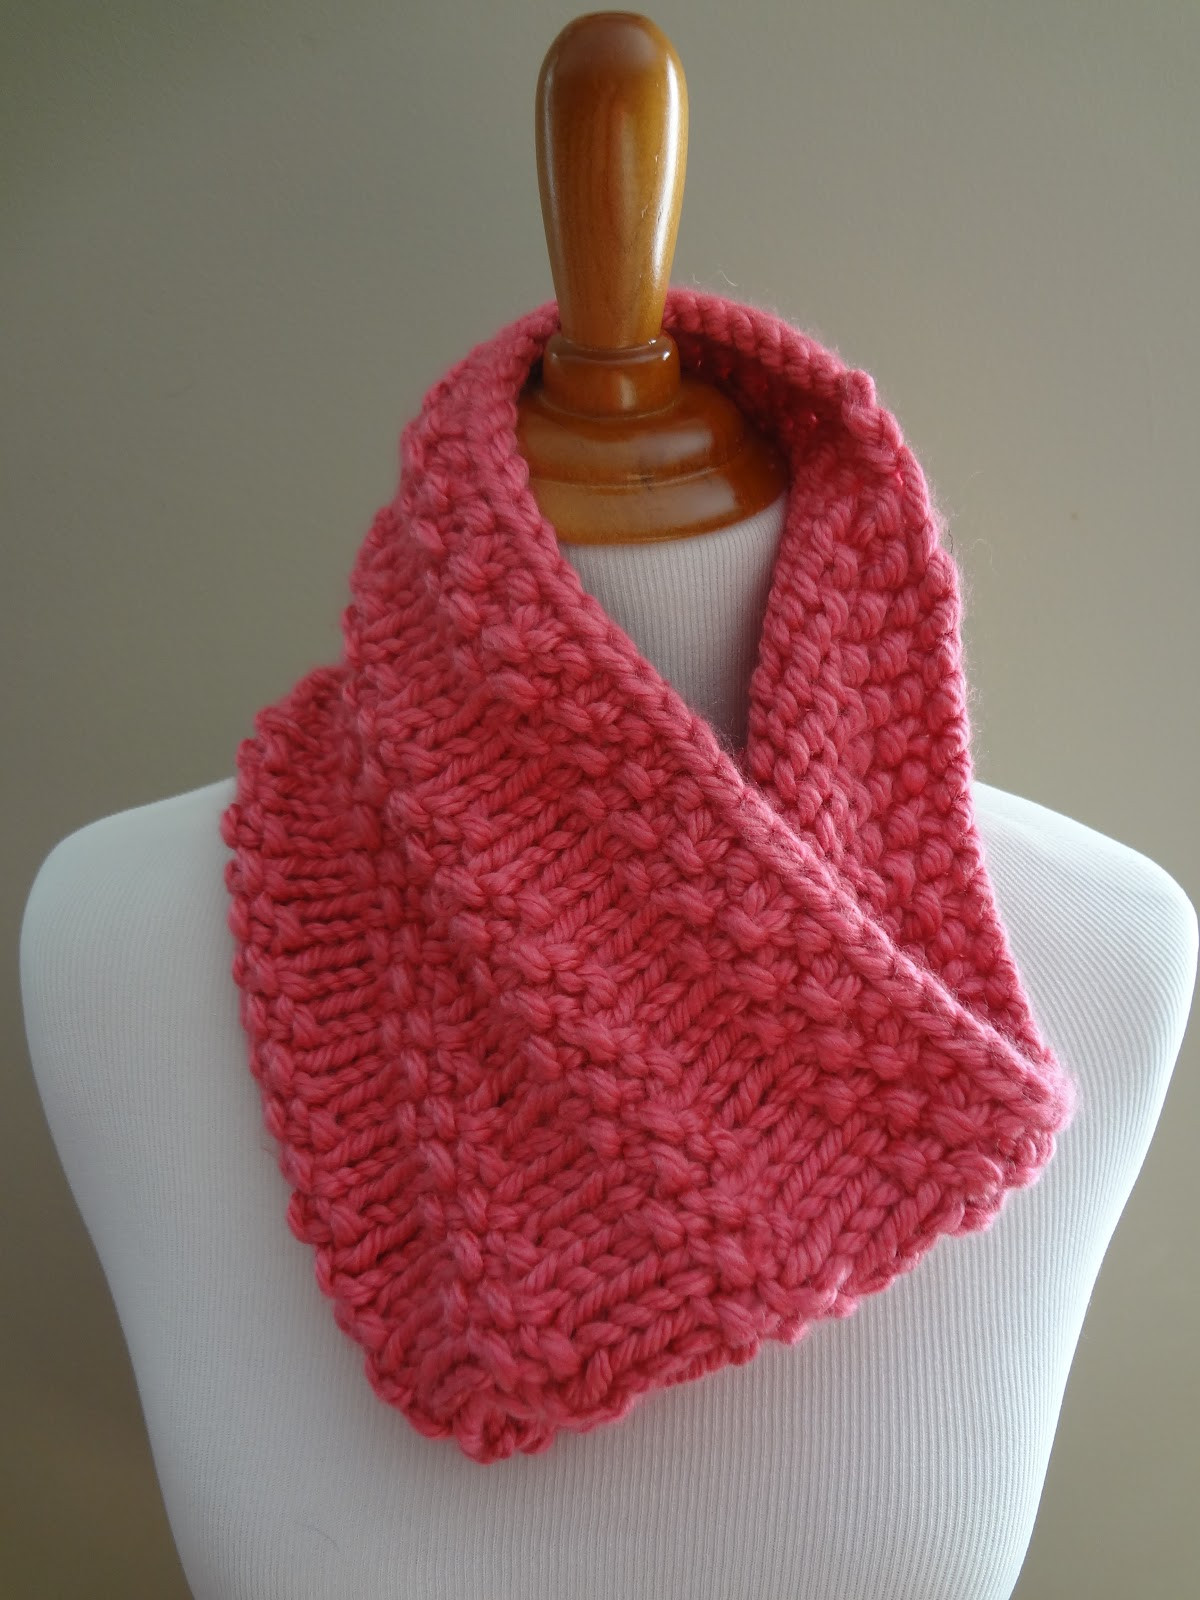 Best Of Try Knitting with Free Knitting Patterns Crochet and Knit Free Knitting Of Charming 40 Pics Free Knitting